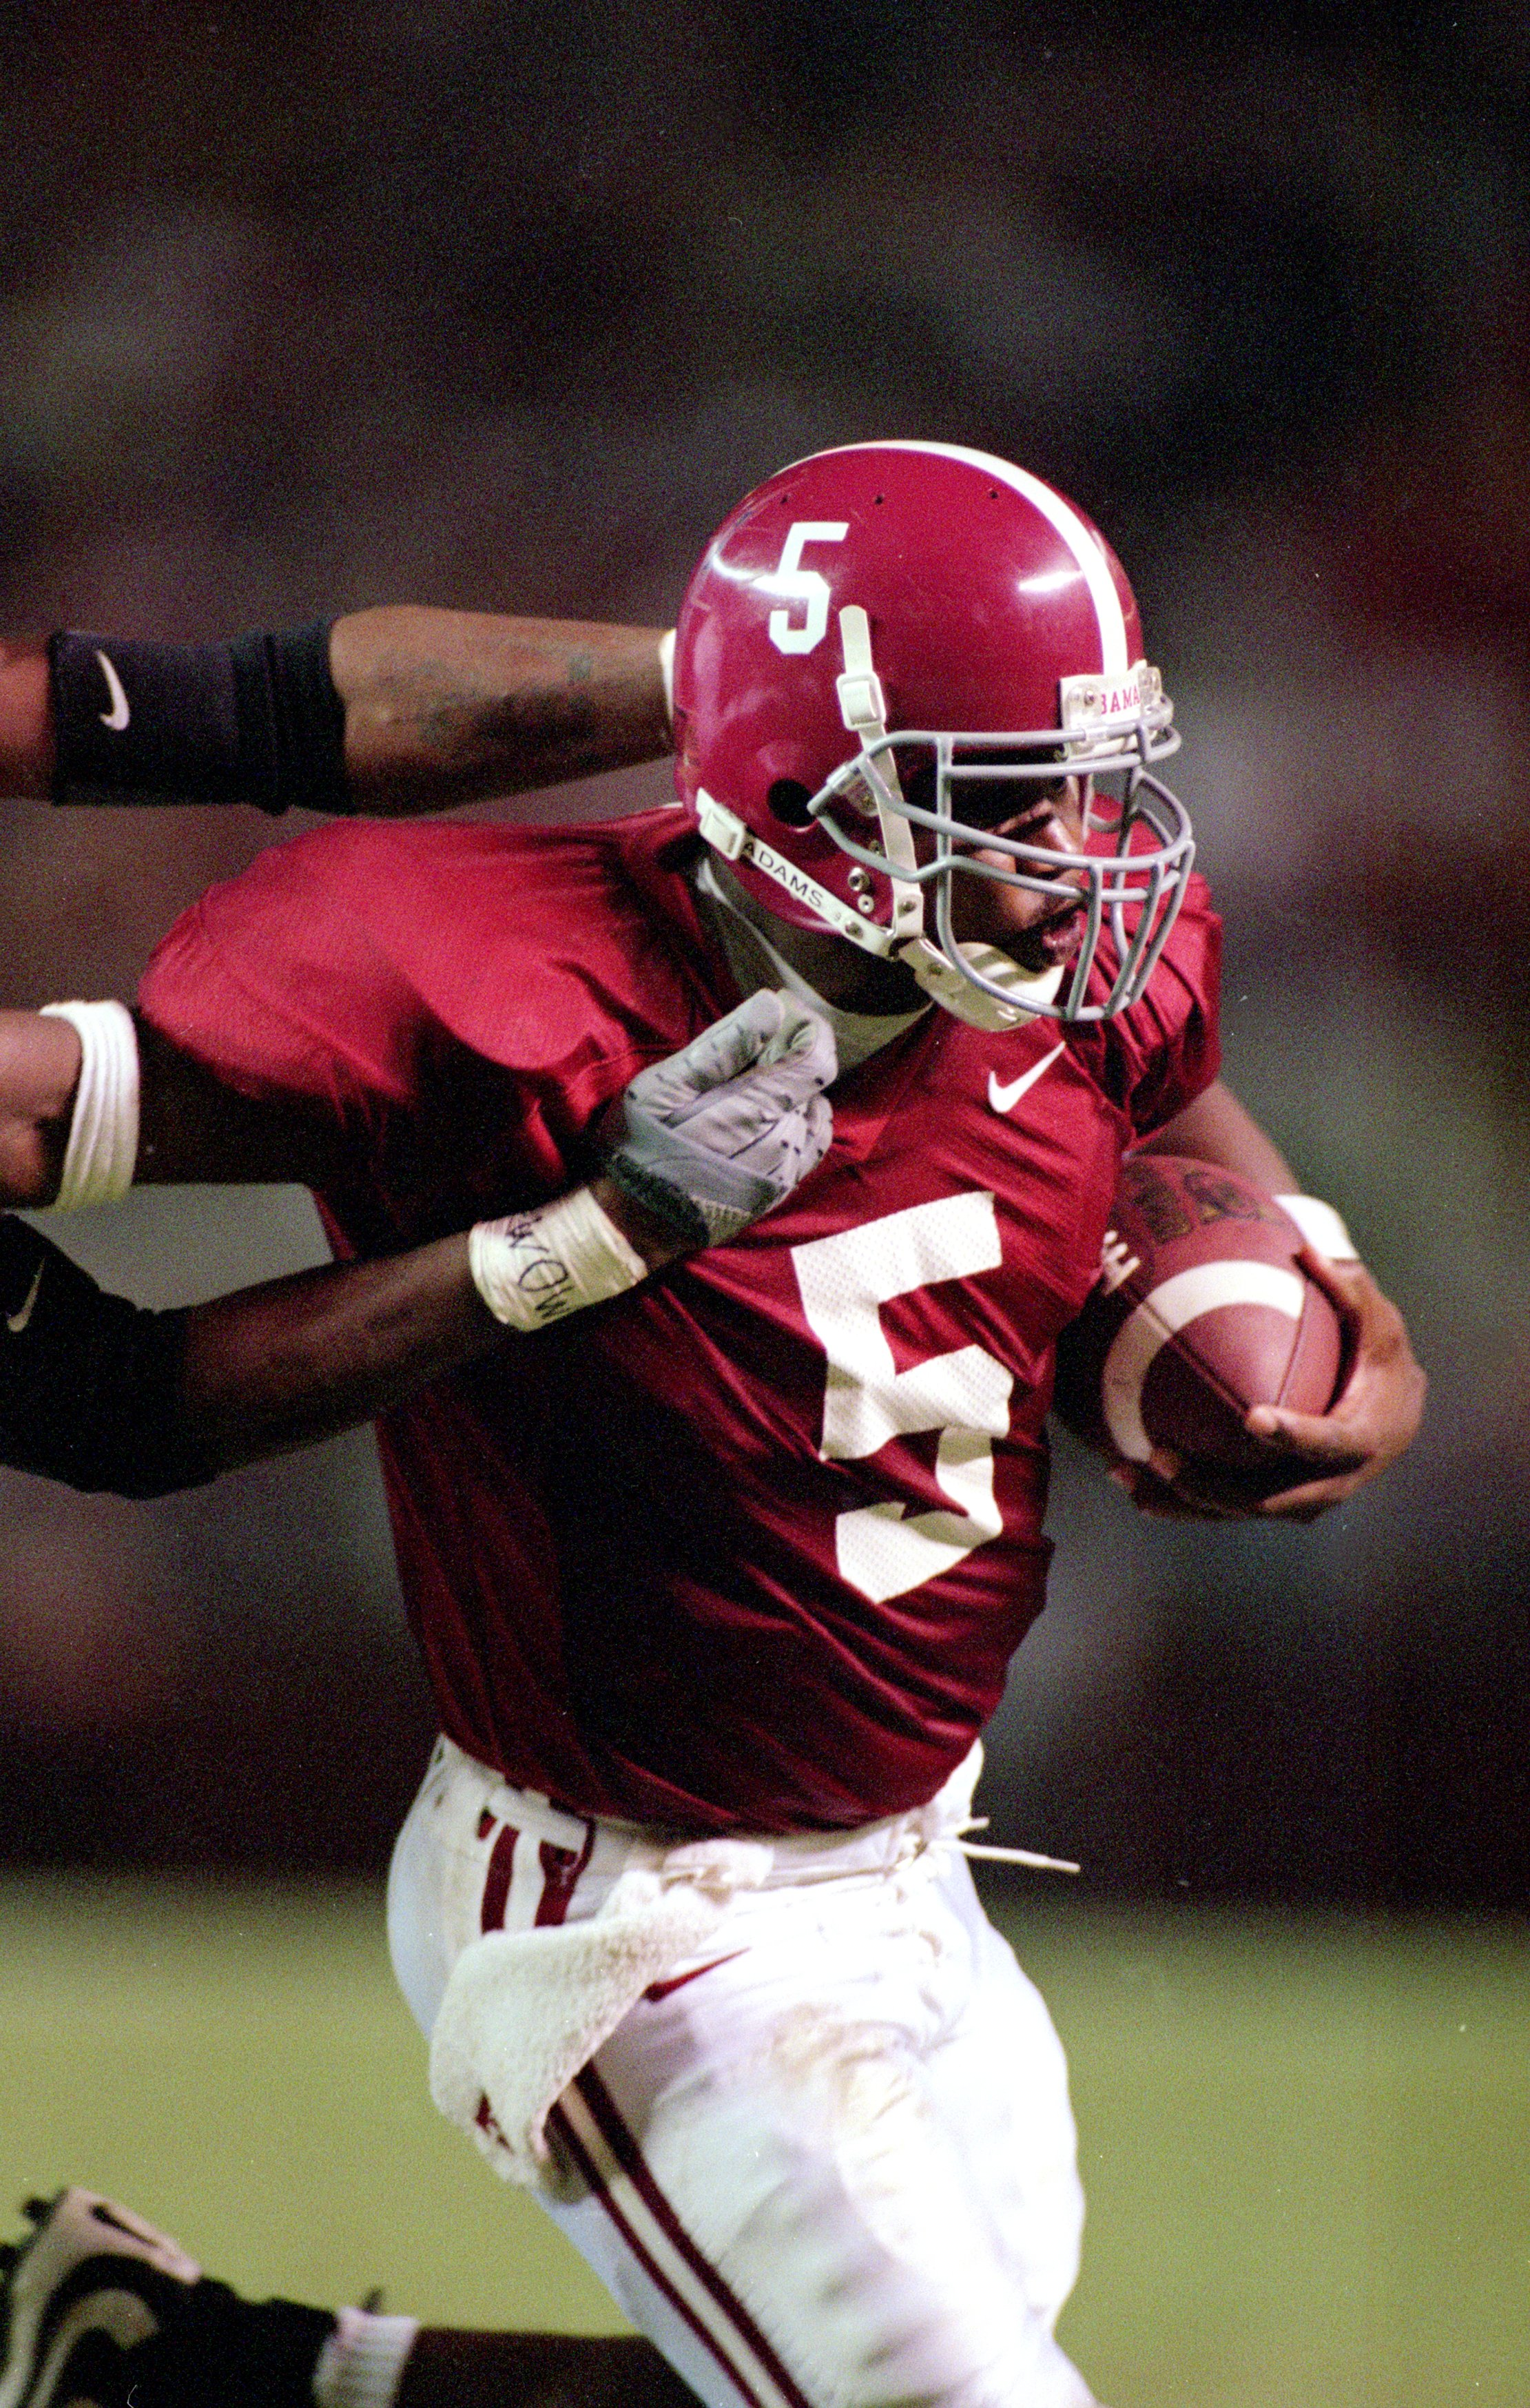 14 Oct 2000: Quarterback Andrew Zow #5 of the Alabama Crimson Tide carries the ball during the game against the Mississippi Rebels at the Bryant-Denny Stadium in Tuscaloosa, Alabama. The Crimson Tide defeated the Rebels 45-7.Mandatory Credit: Blake Sims